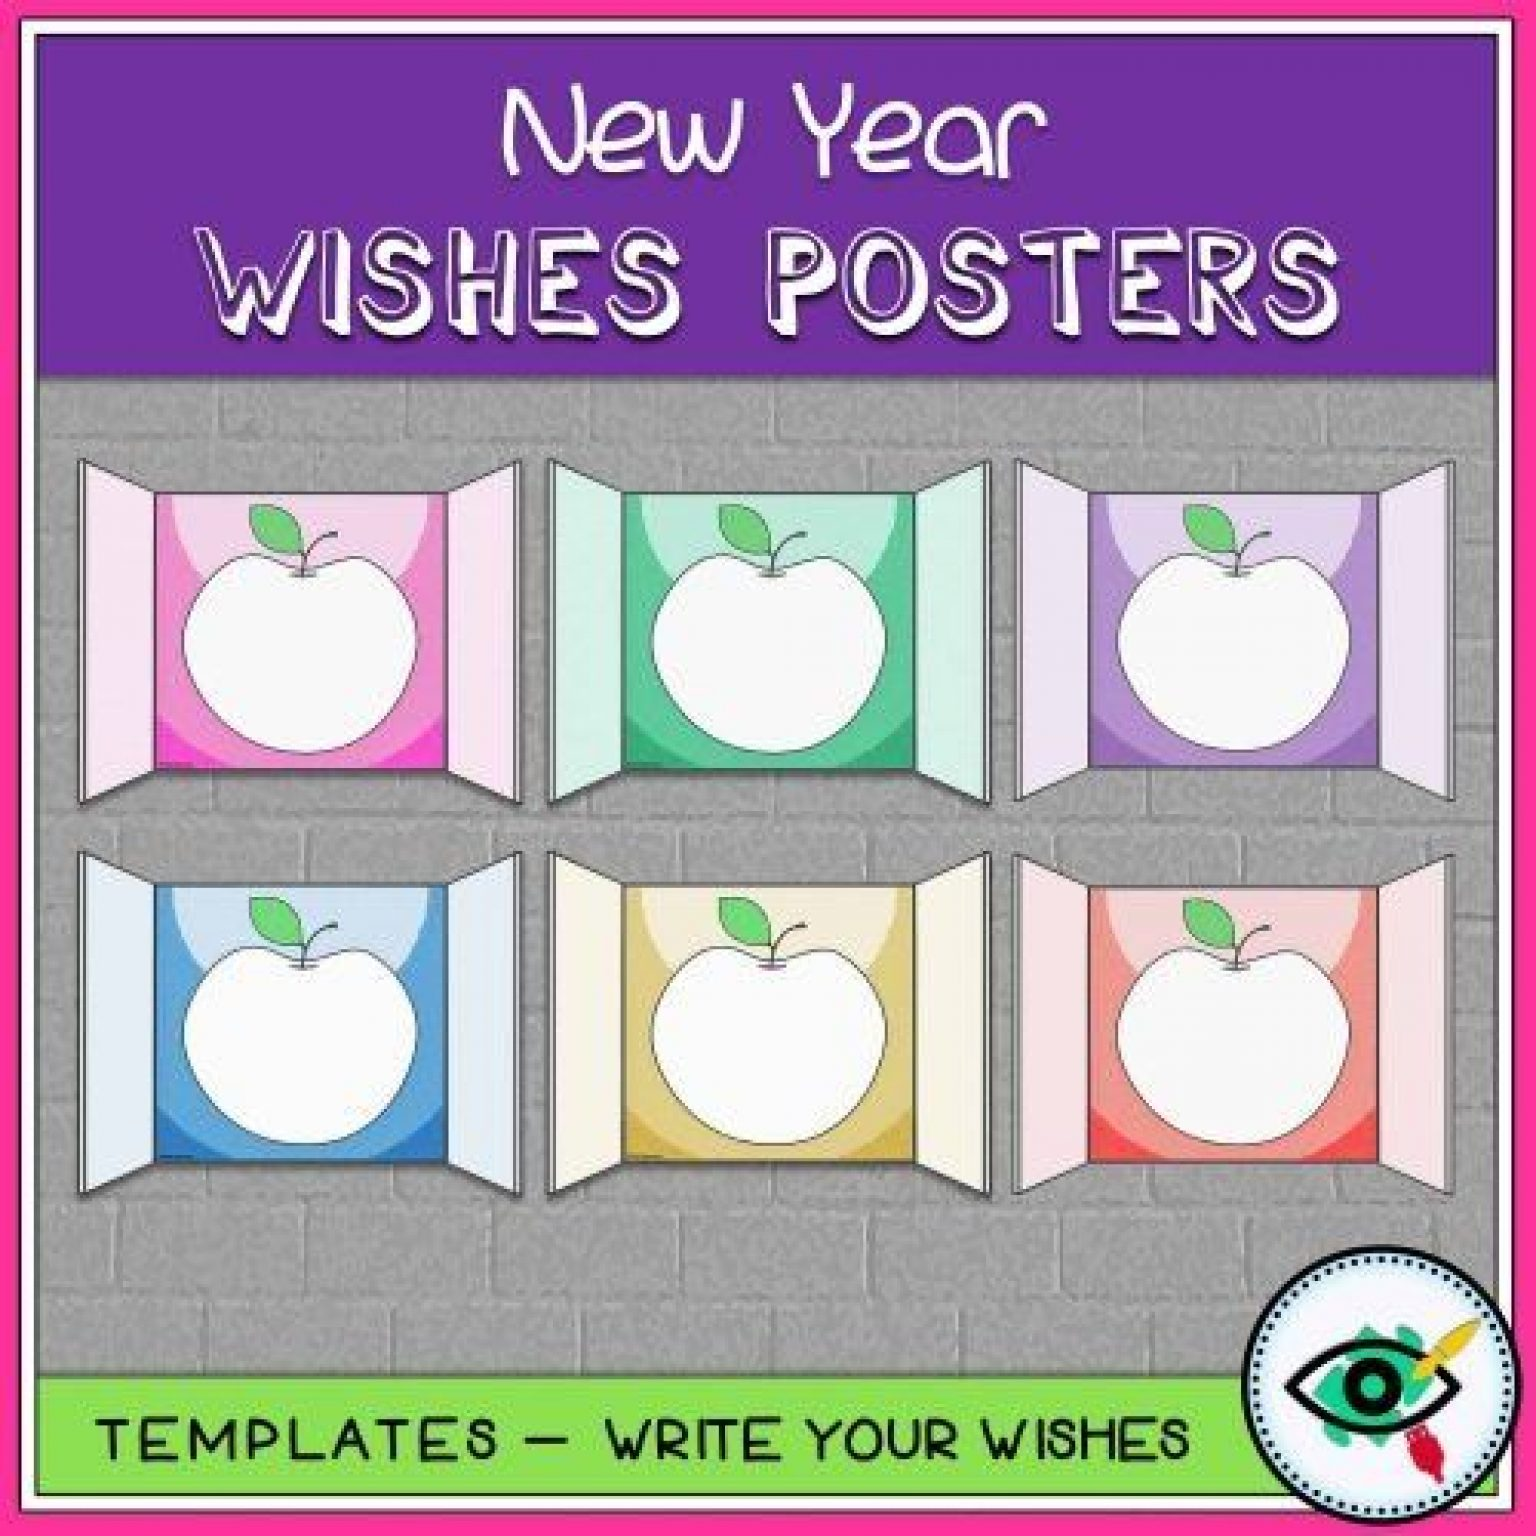 apples-in-window-wishes-posters-hebrew-title2